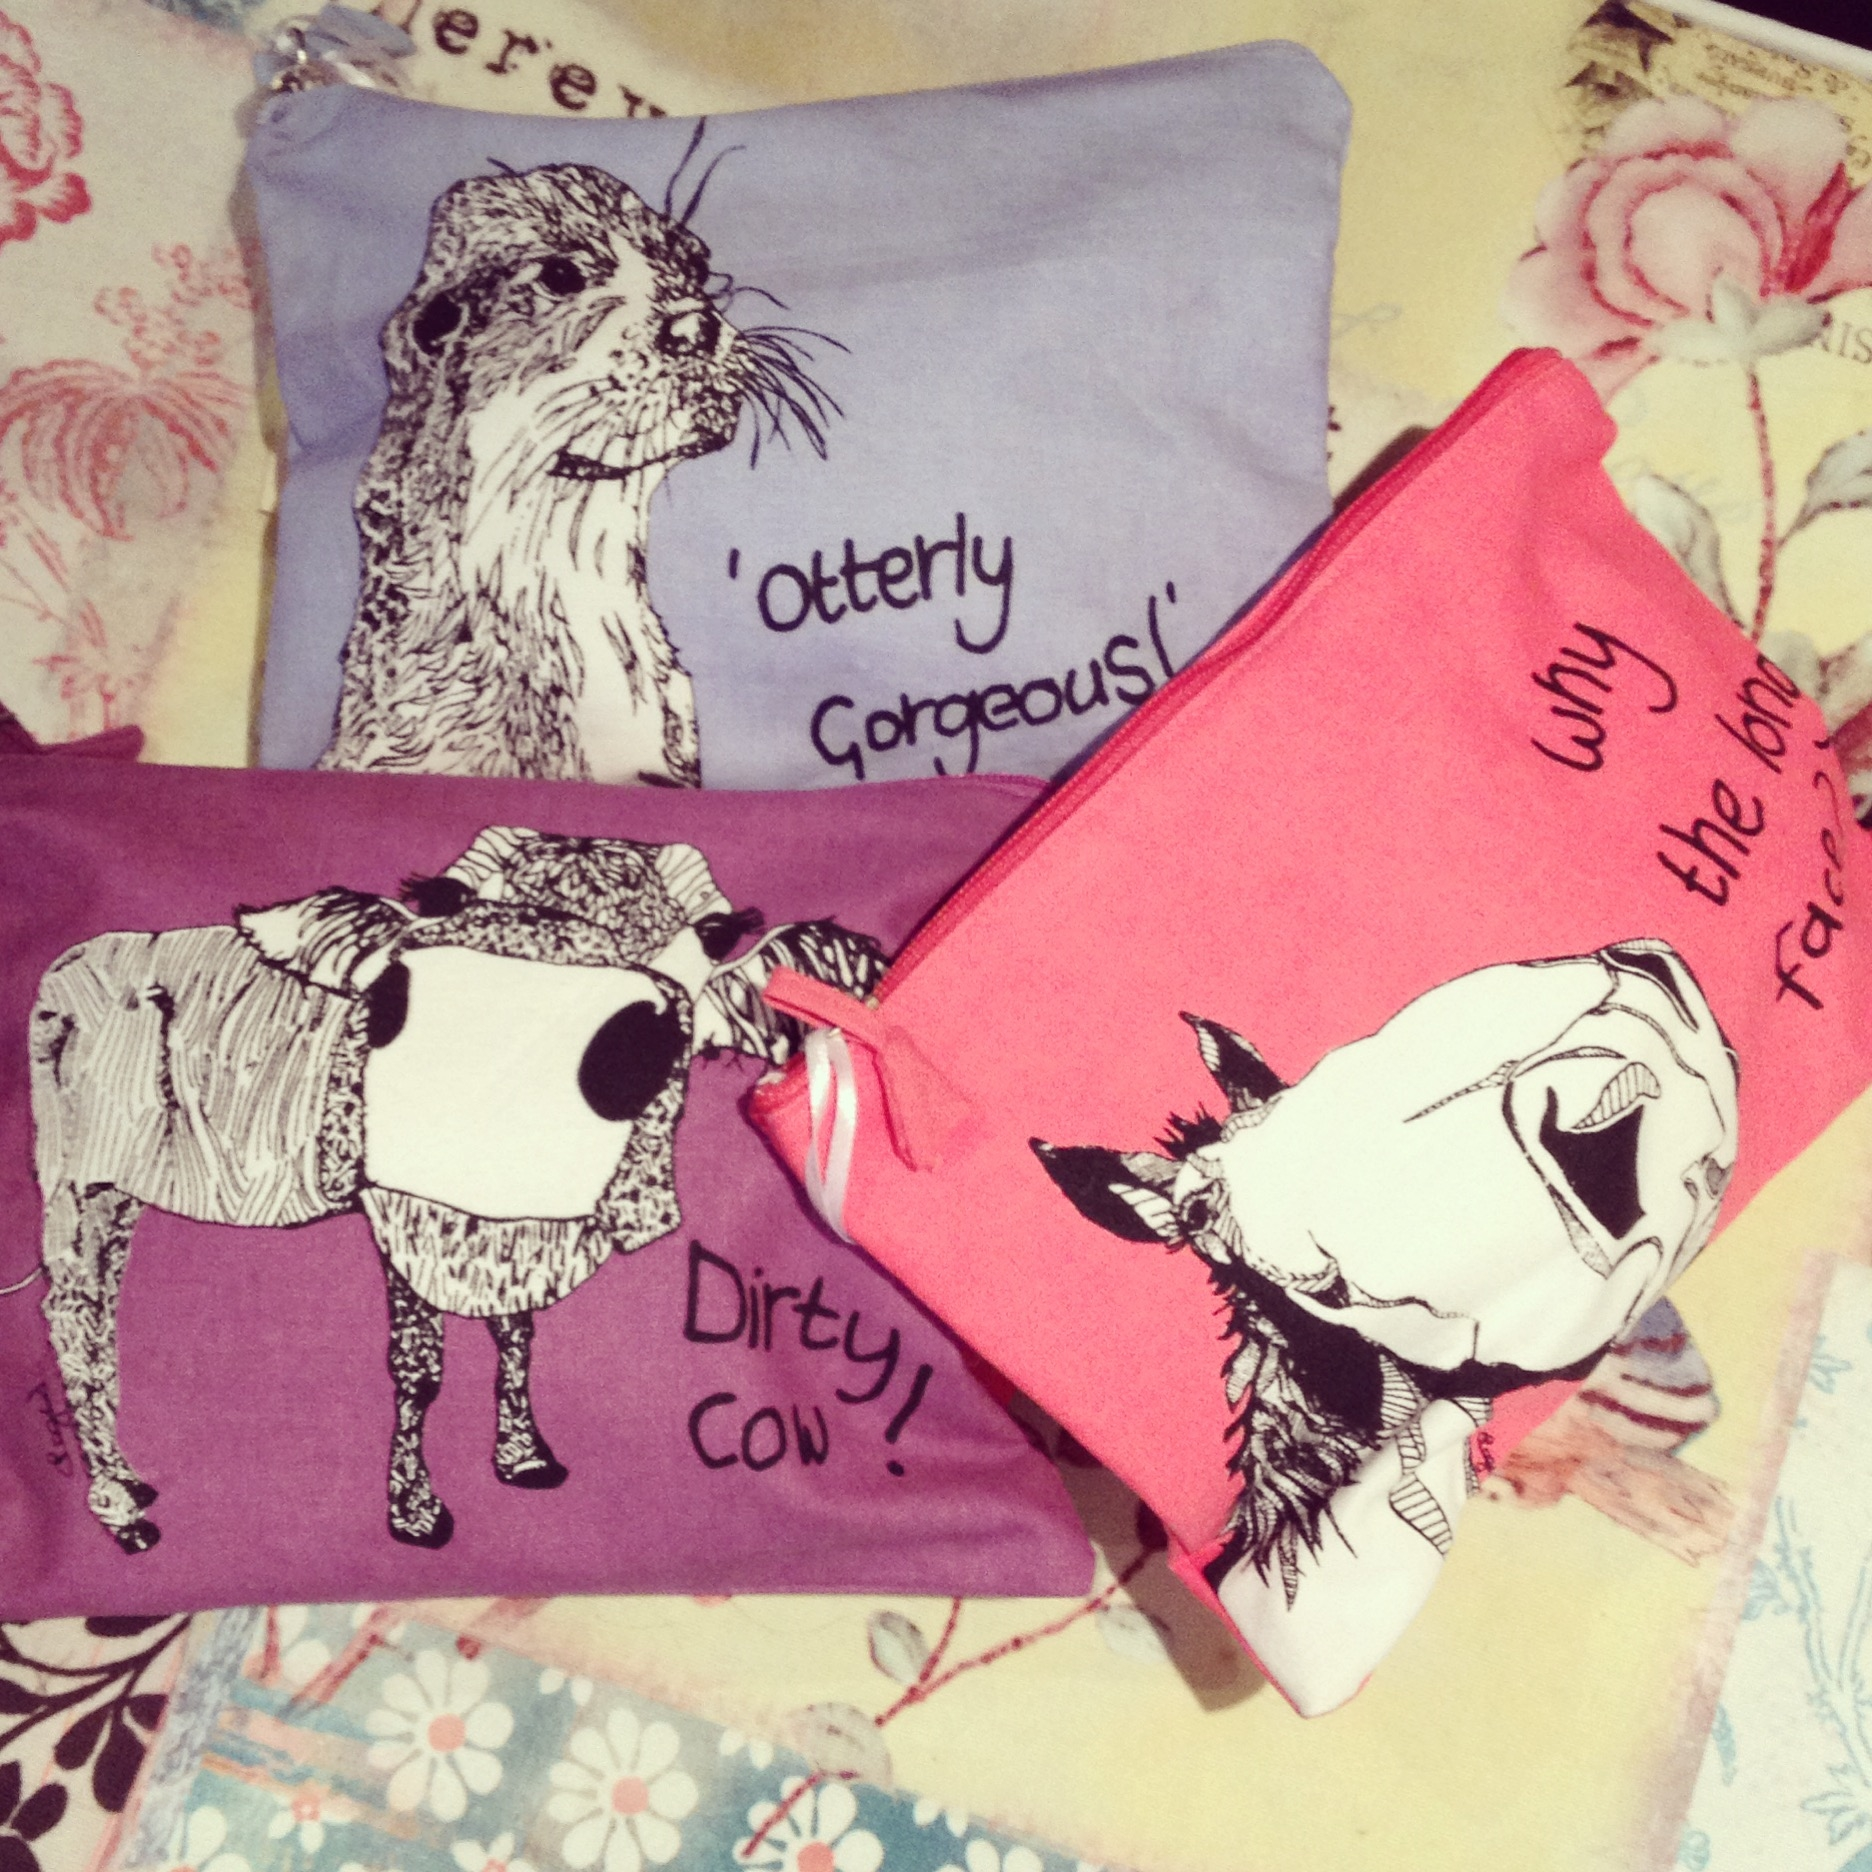 Back by popular demand fun make up bags, 'Otterly gorgeous!', Why the long face? and Dirty cow!